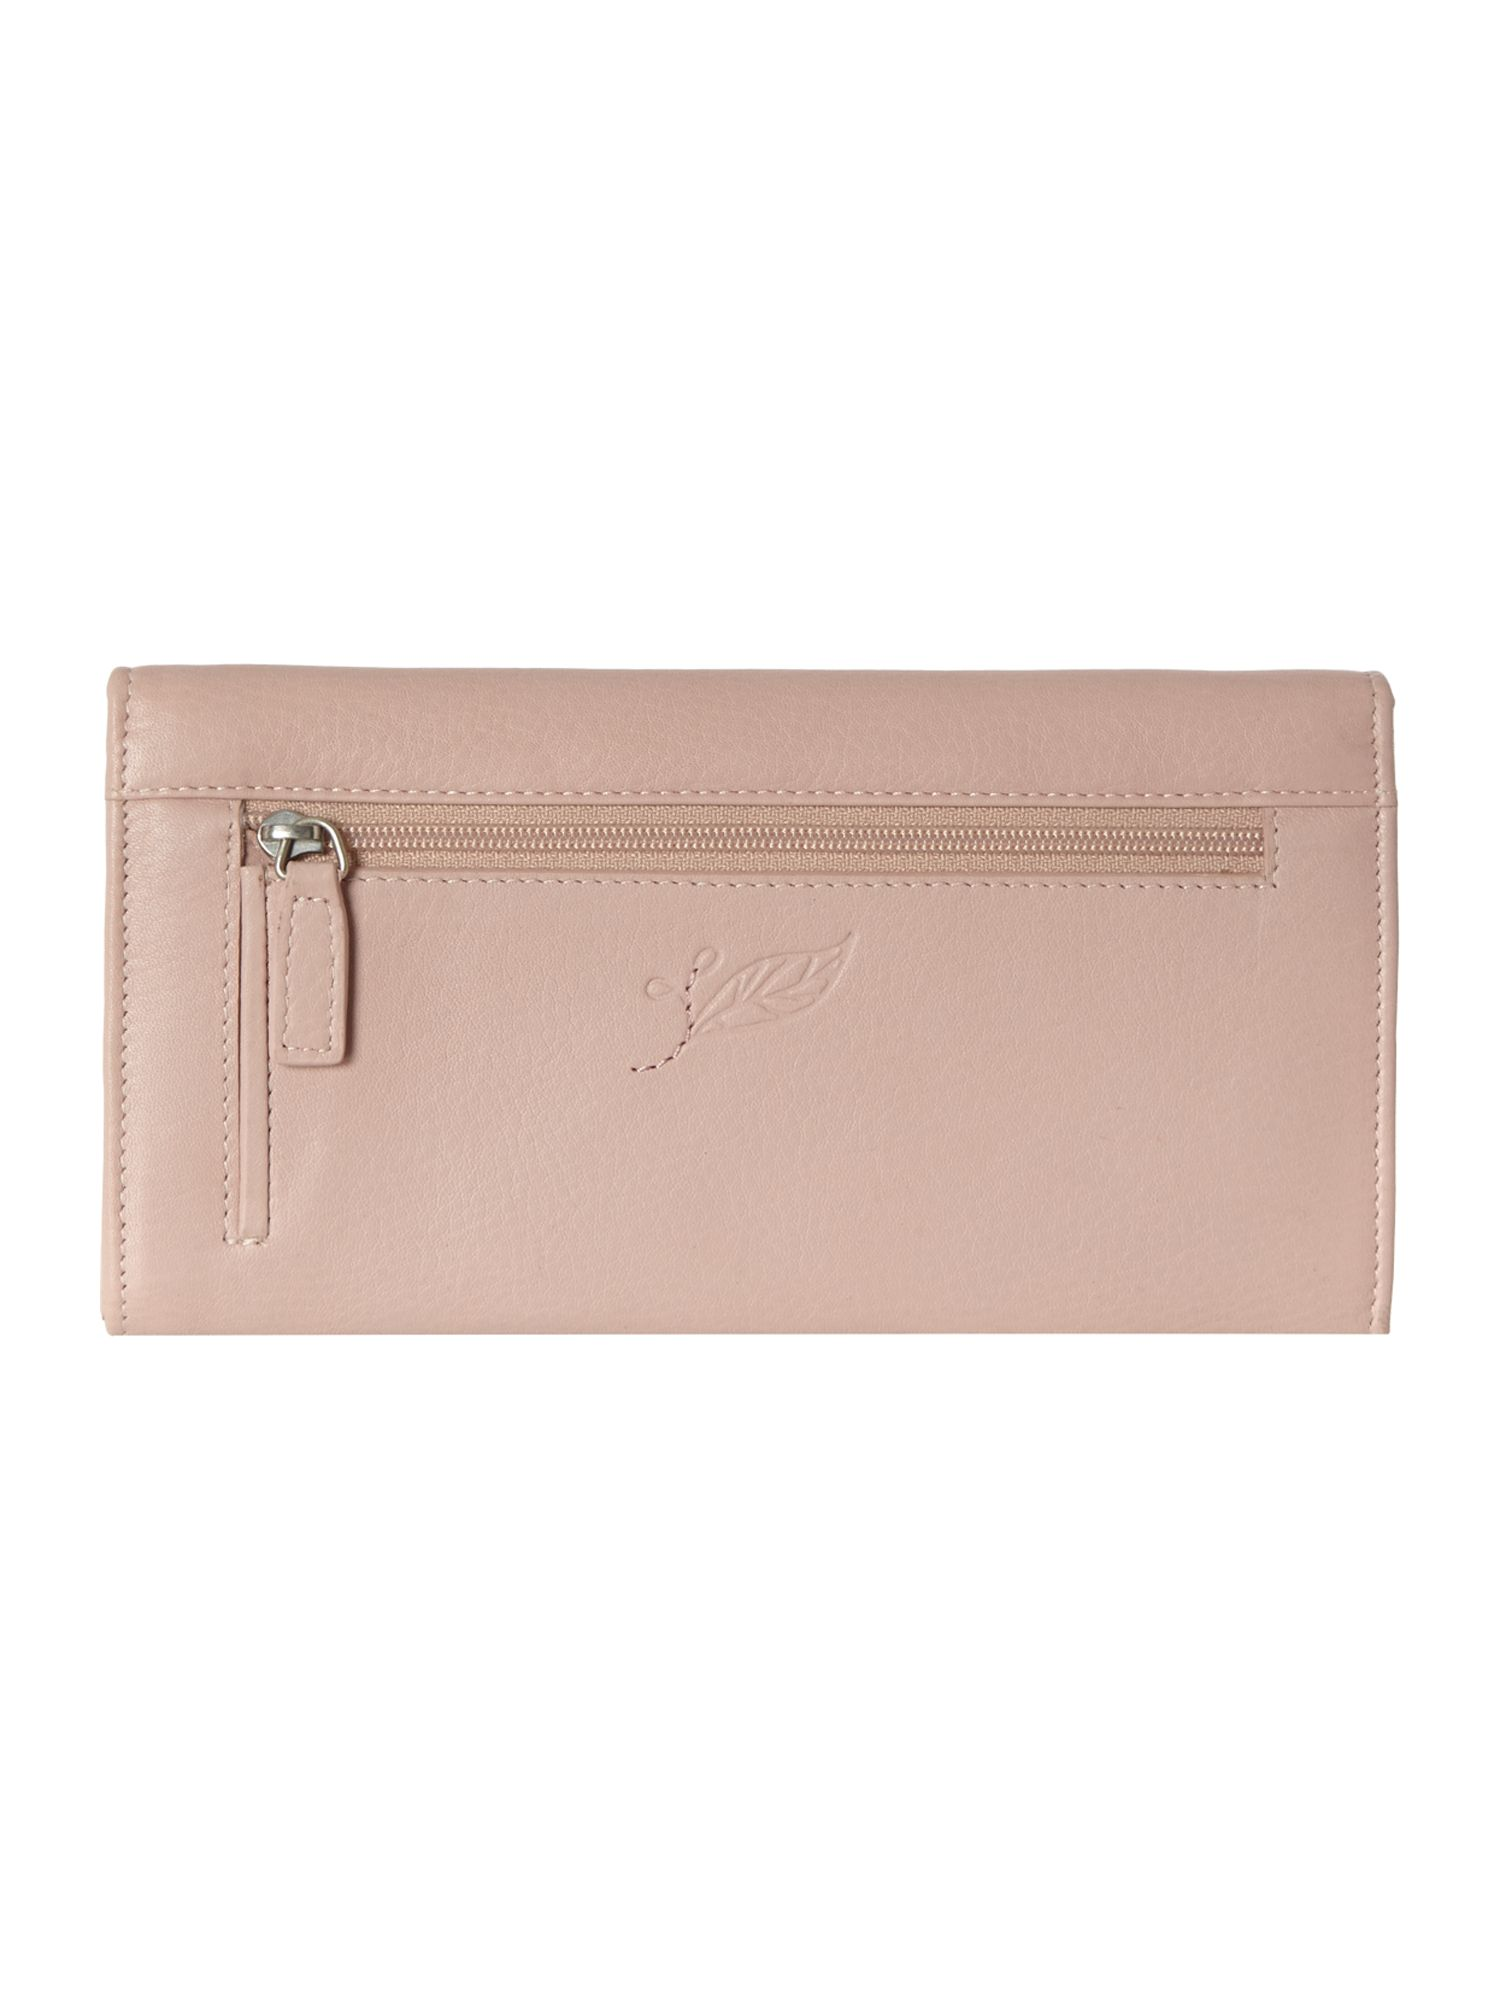 Laurel leaf pale pink large flap over purse